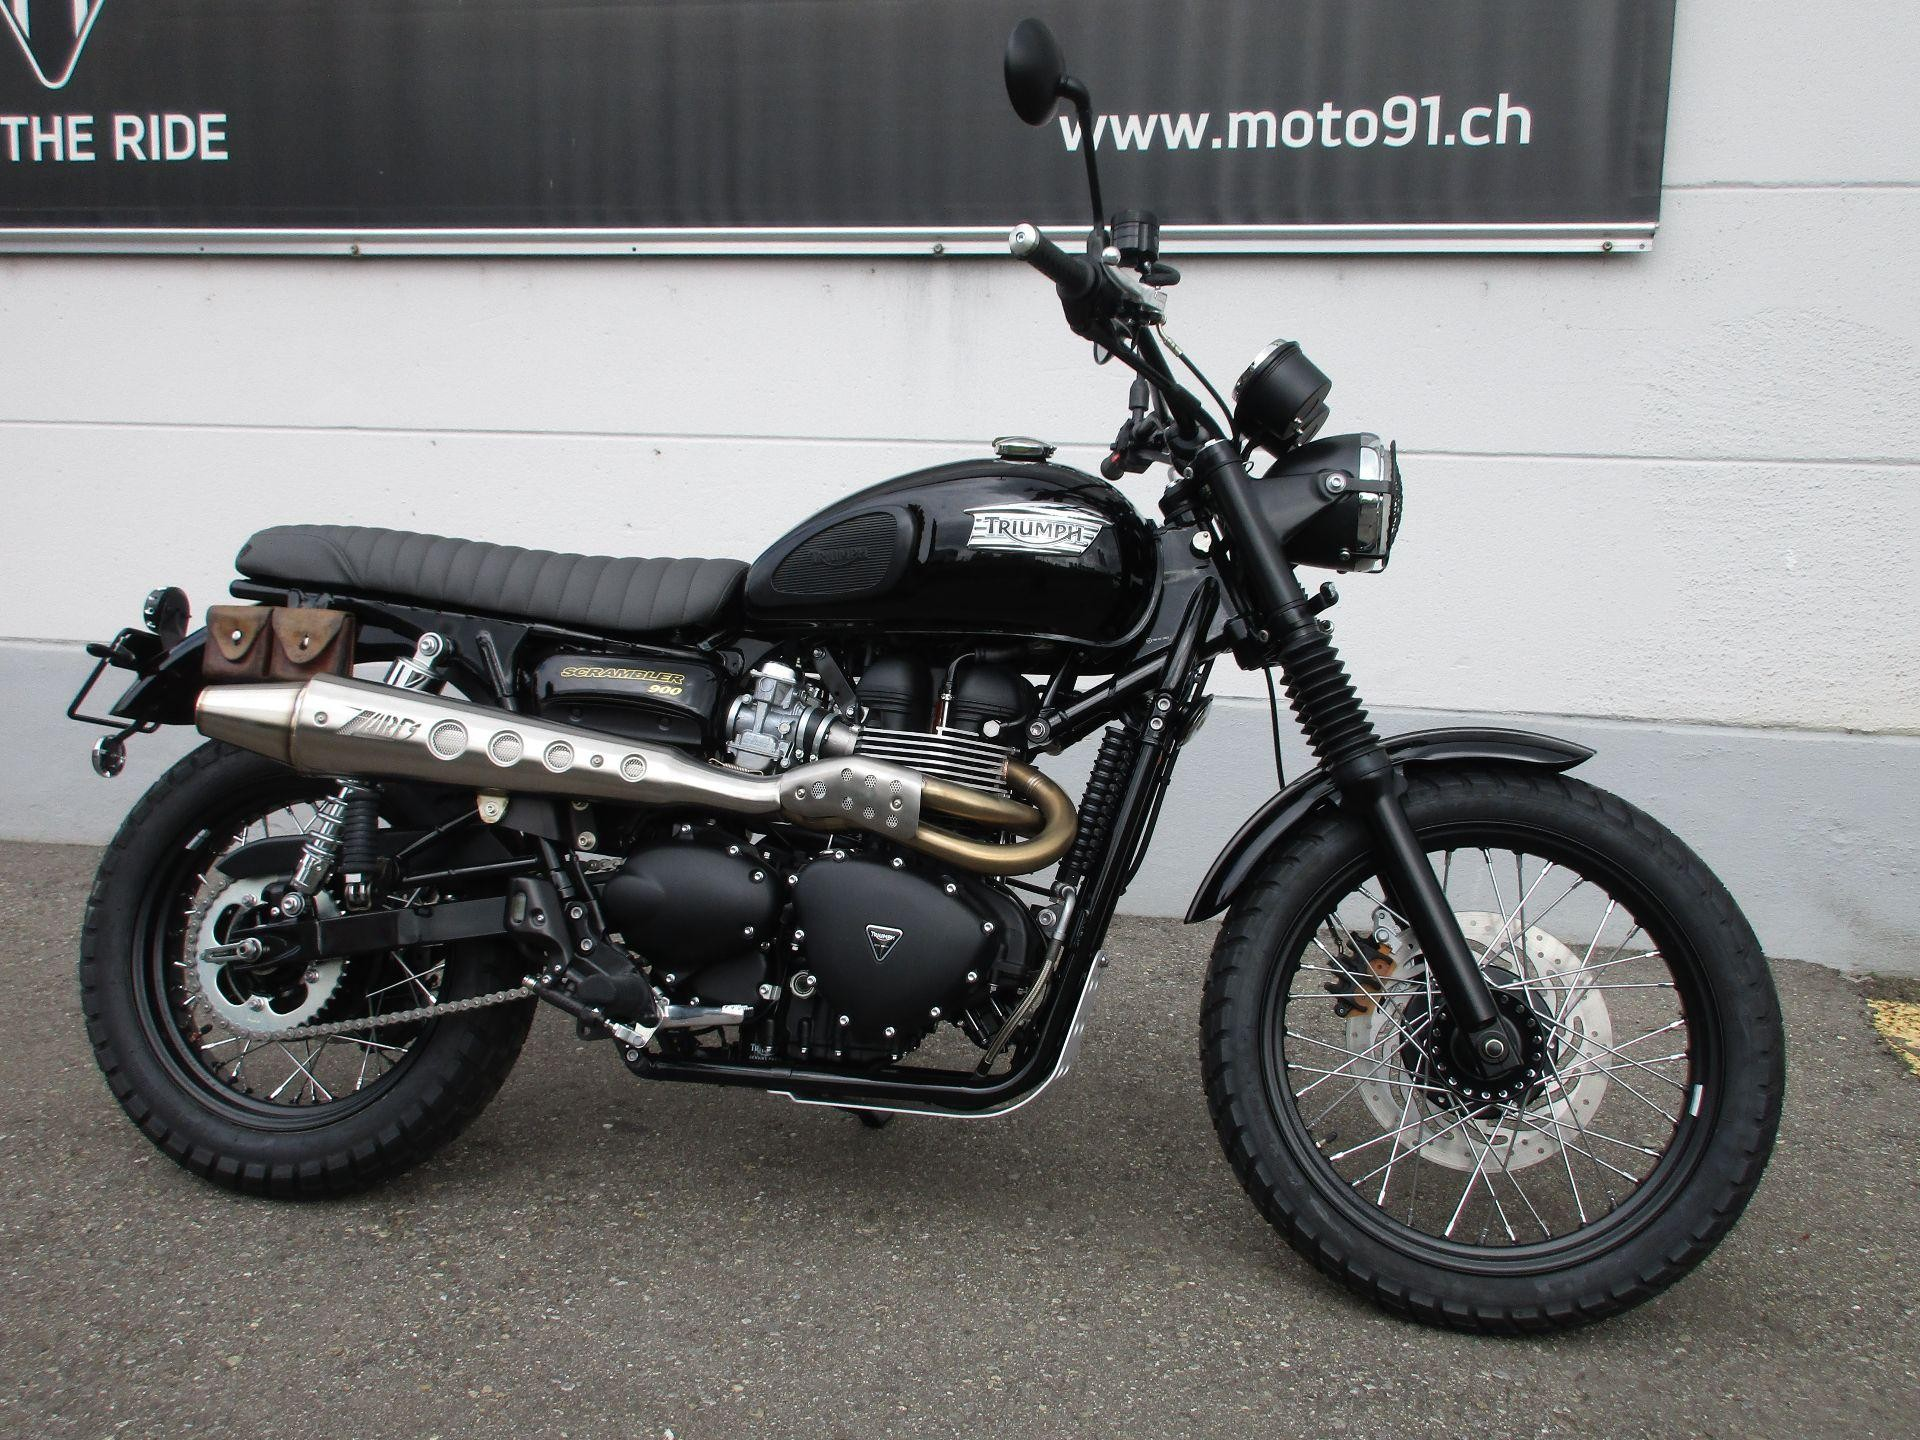 motorrad vorjahresmodell kaufen triumph scrambler 900 moto 91 ag h ri. Black Bedroom Furniture Sets. Home Design Ideas